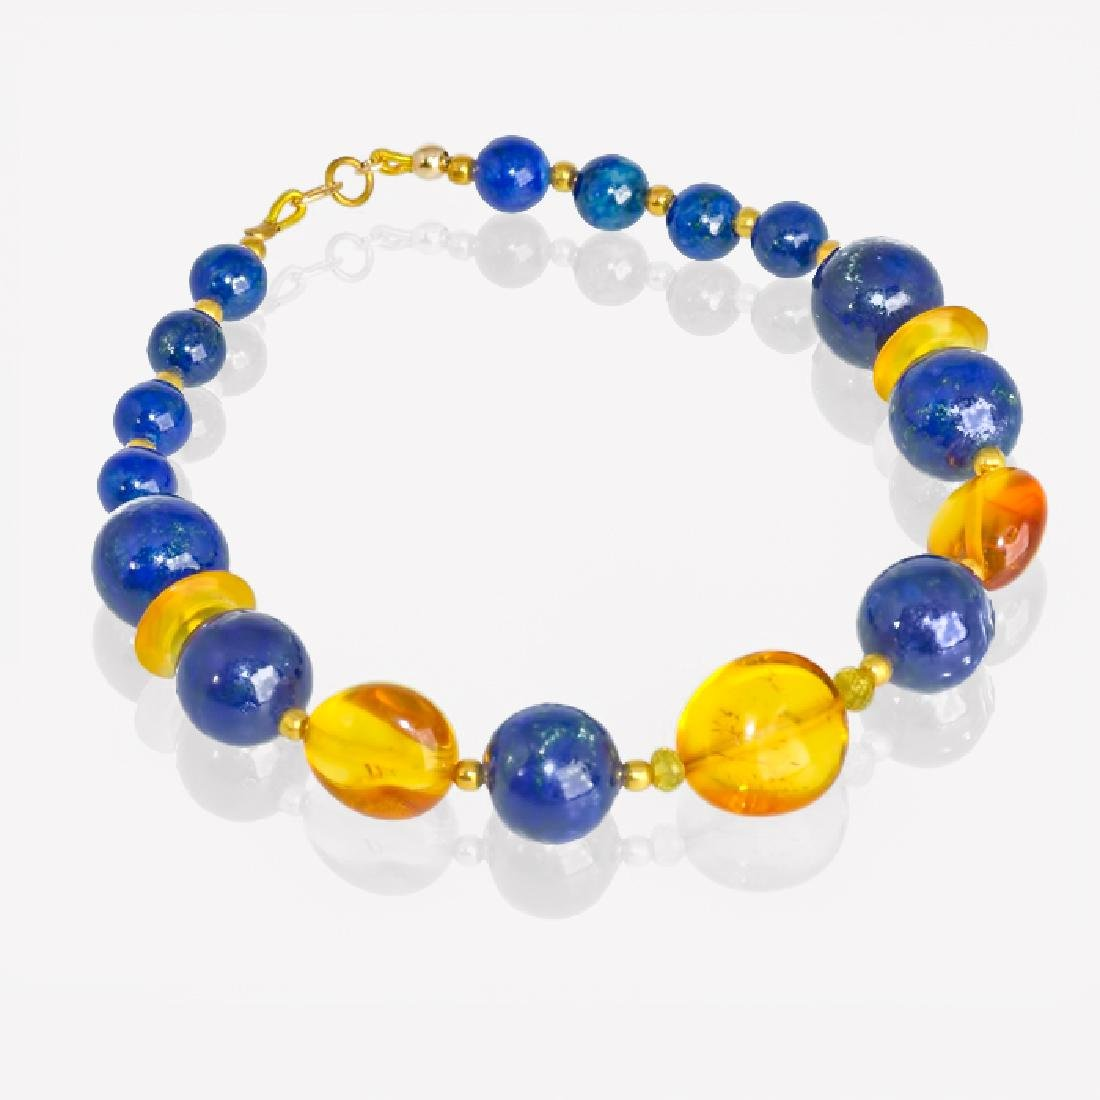 Lapis lazuli and Amber bracelet with Sapphires - 4